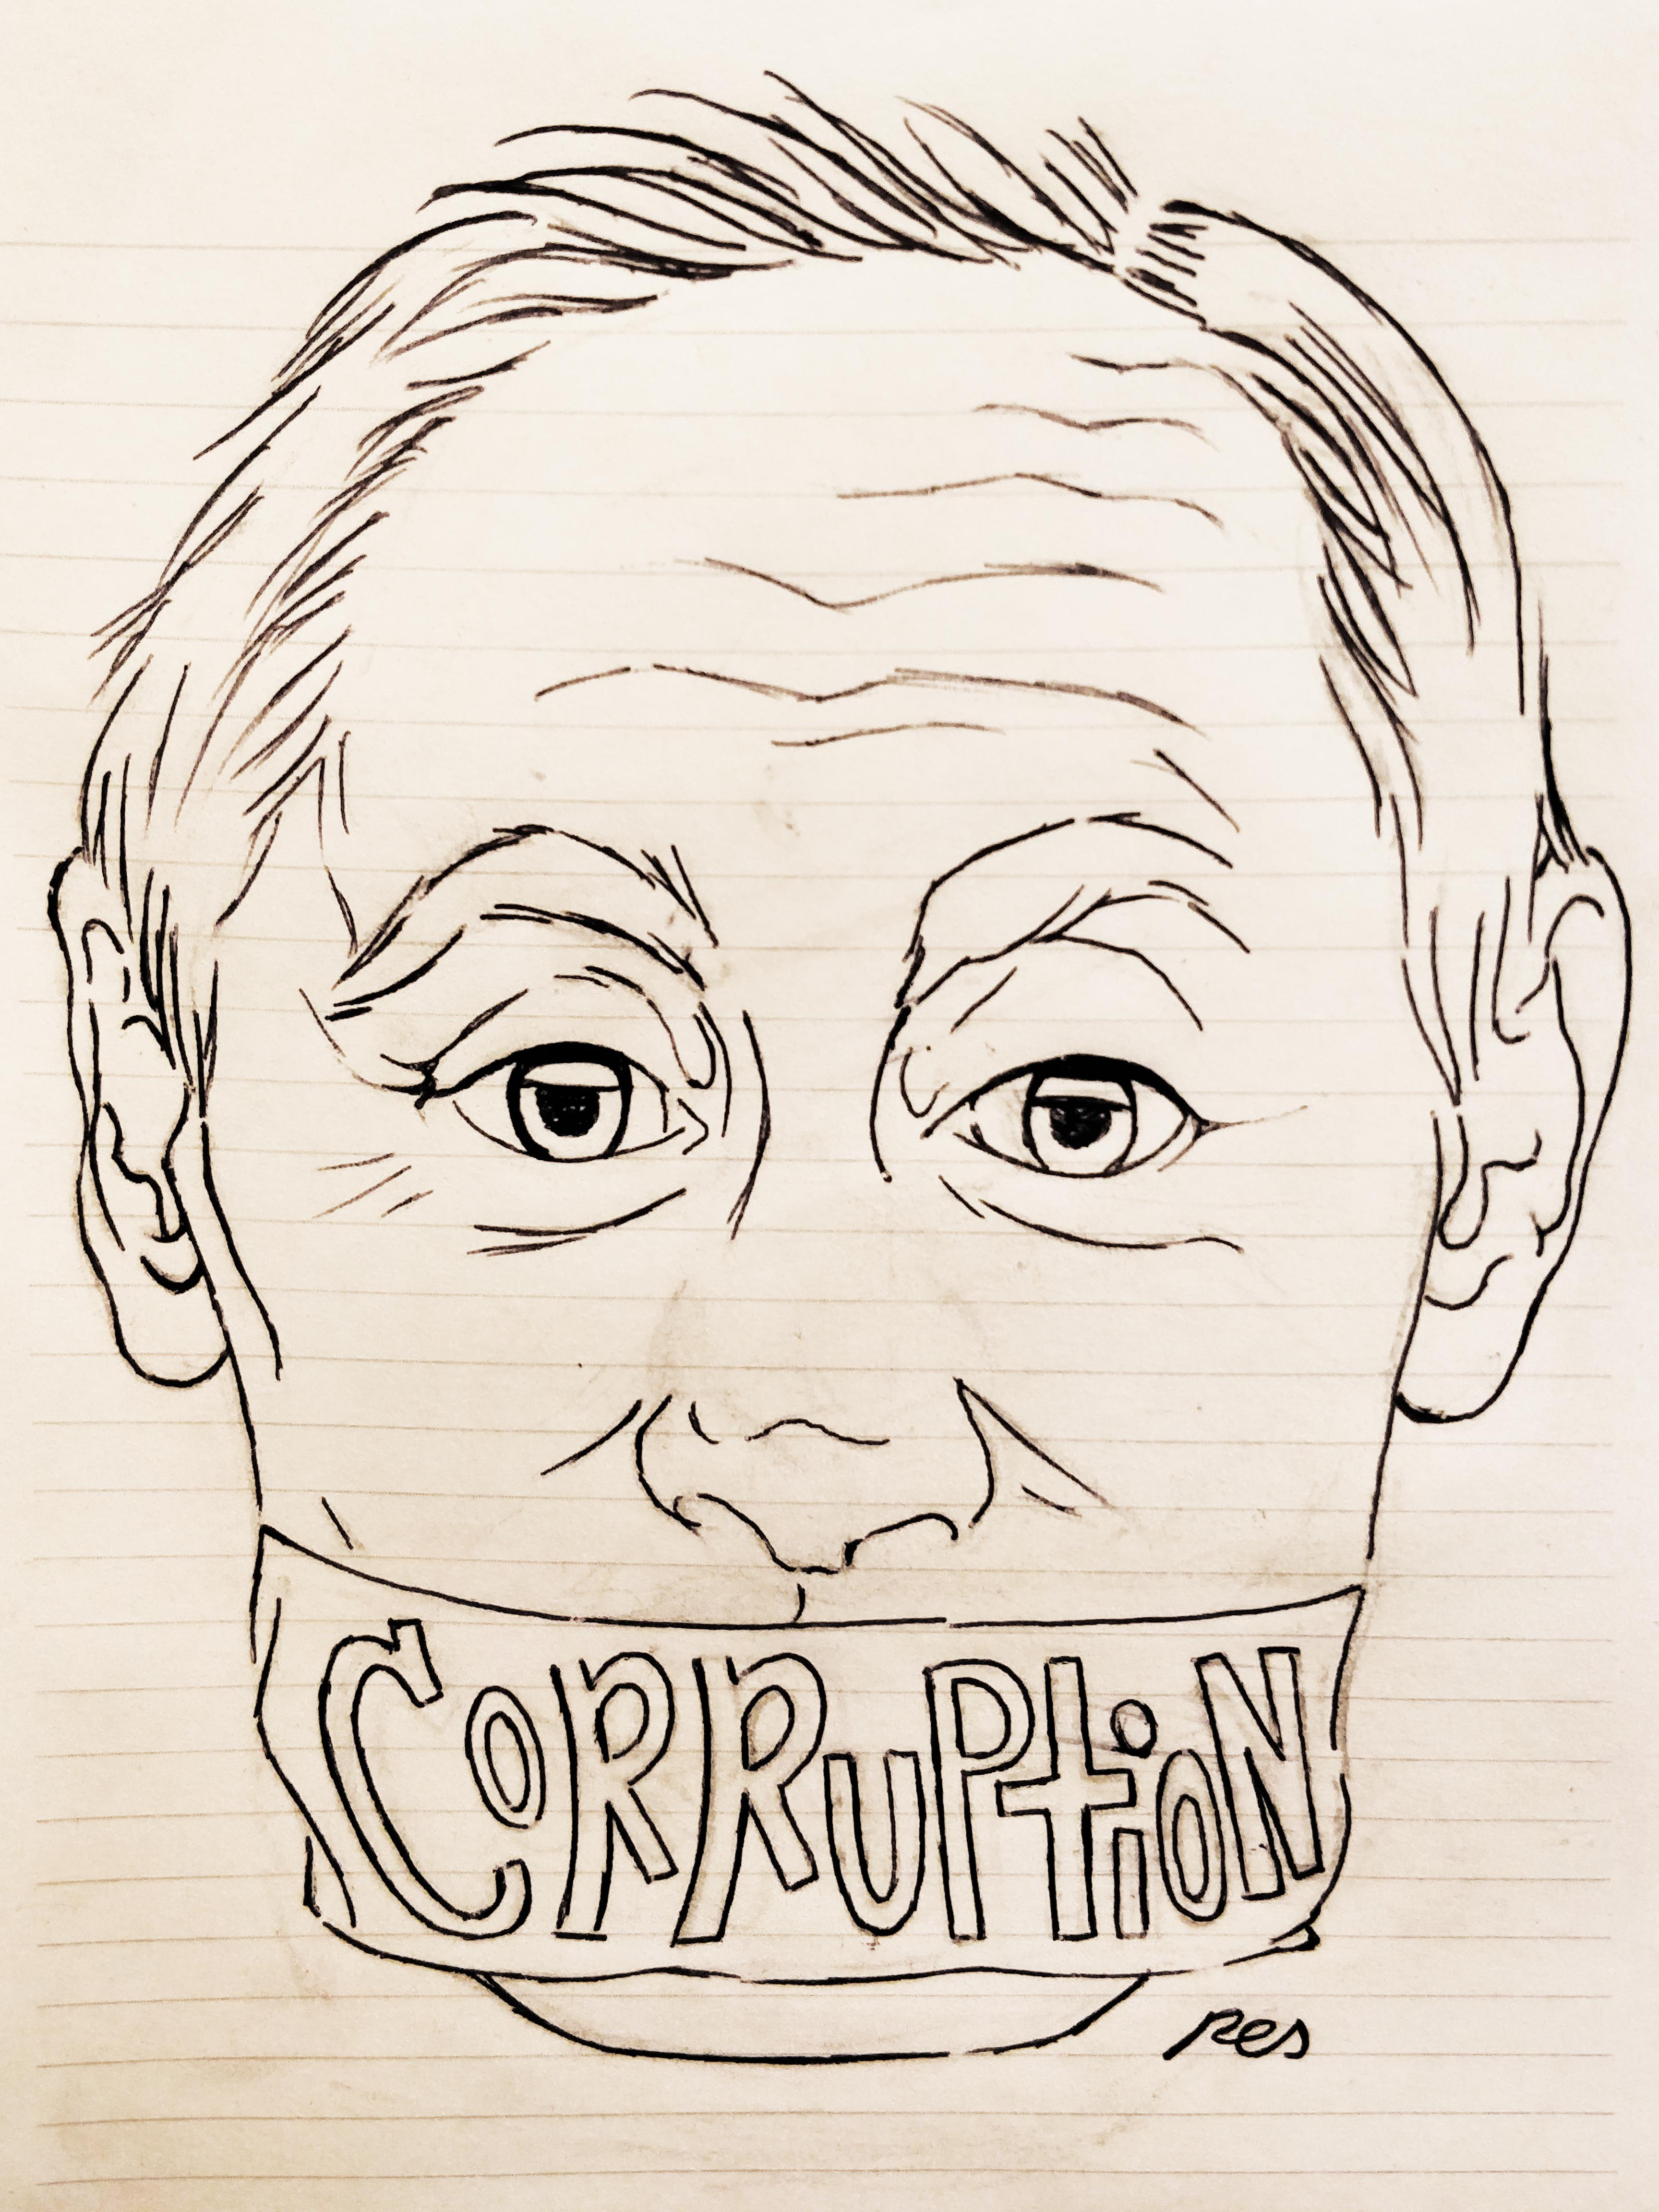 IPD Article Image - Editorial: A lesson on muzzling the media, corruption in Russian Cabinet